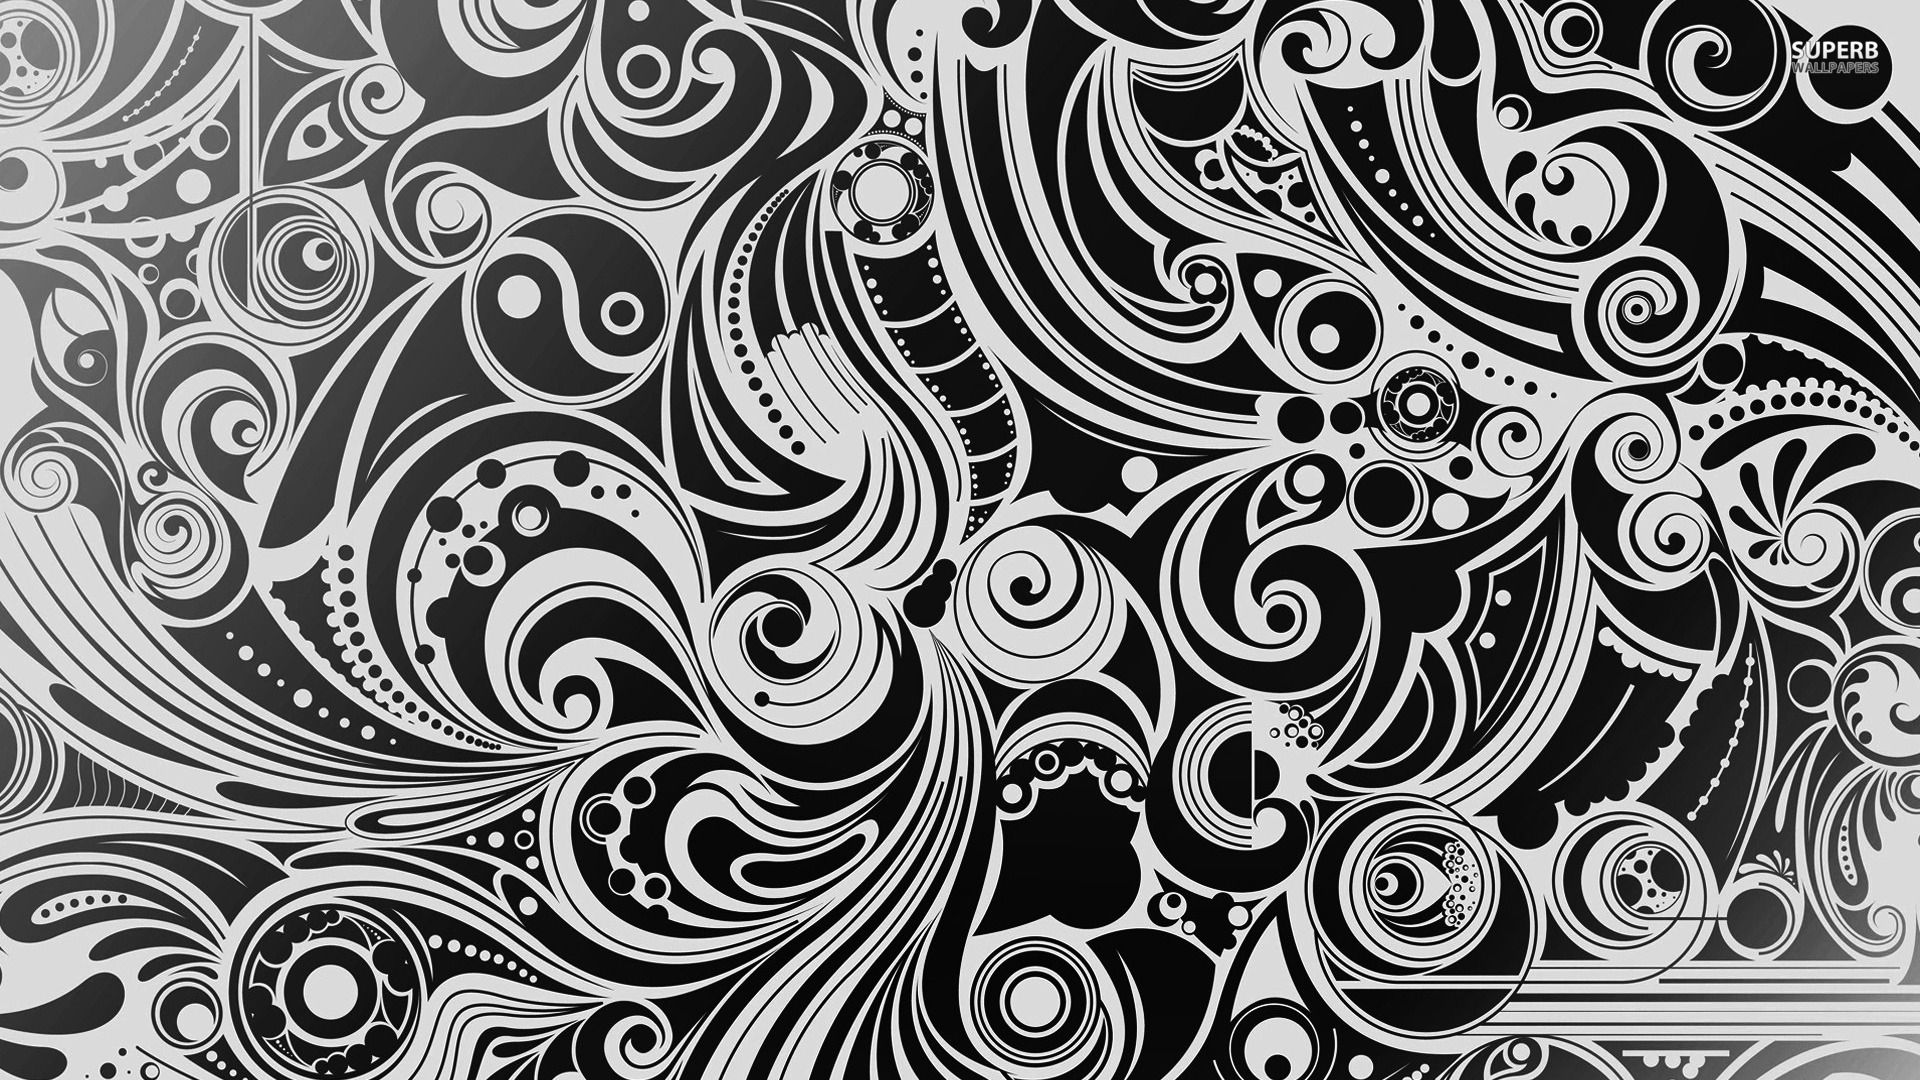 Black White Hd Wallpapers Backgrounds Wallpaper 1920 1080 Black And White Wallpaper 48 Wall Black And White Wallpaper Abstract Art Wallpaper Art Wallpaper Ideas for black and white wallpaper hd